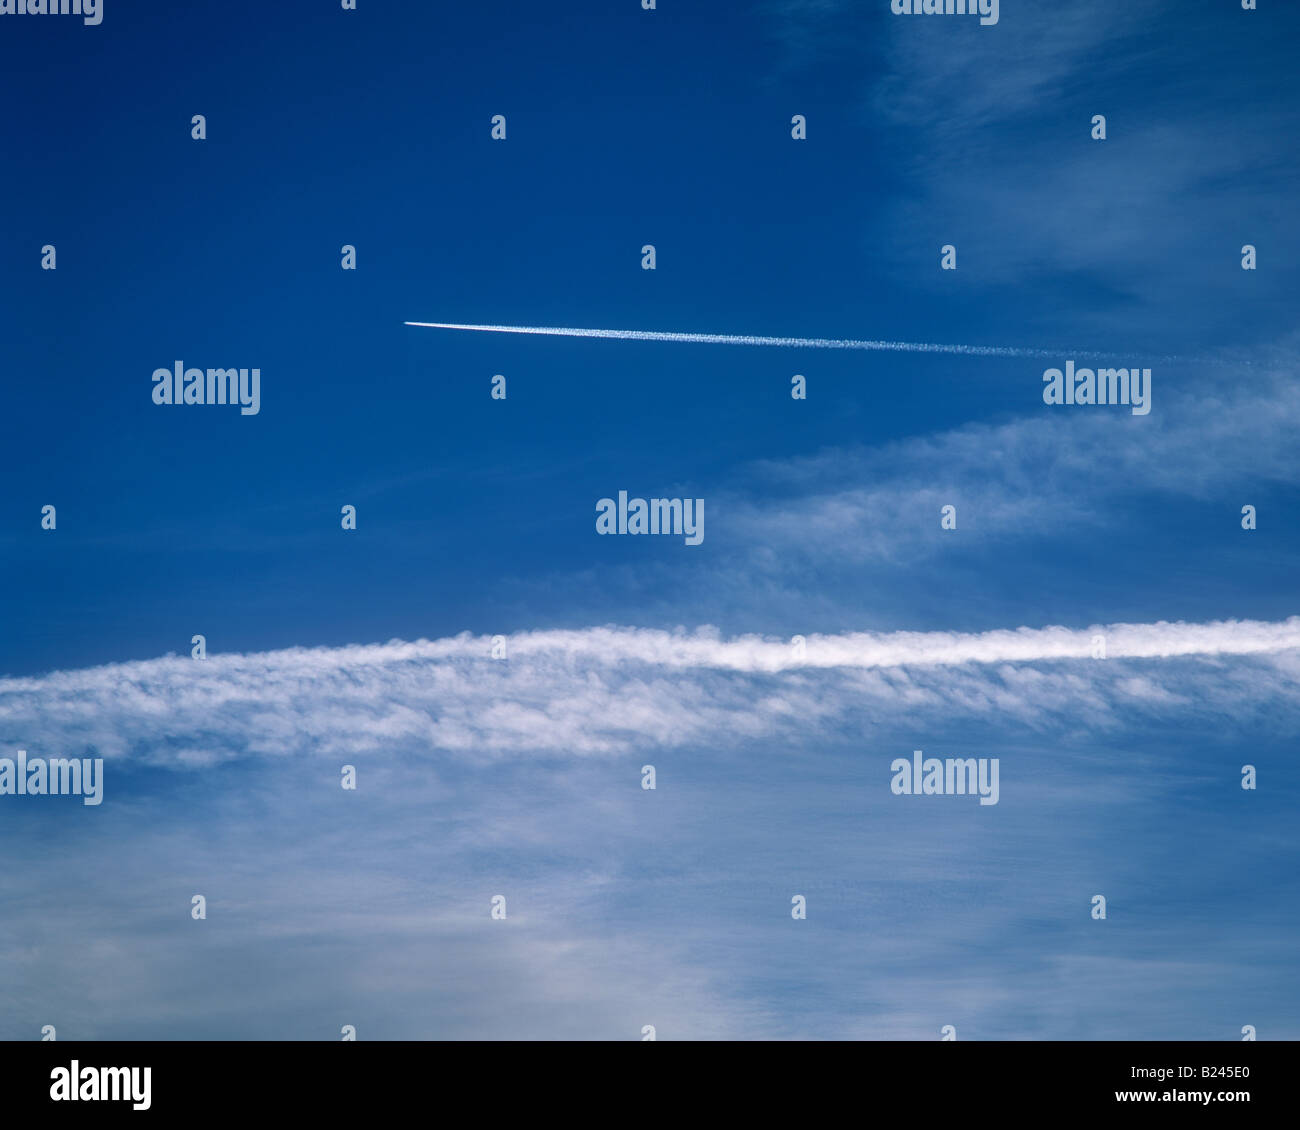 An airplanes vapour trail in the sky - Stock Image